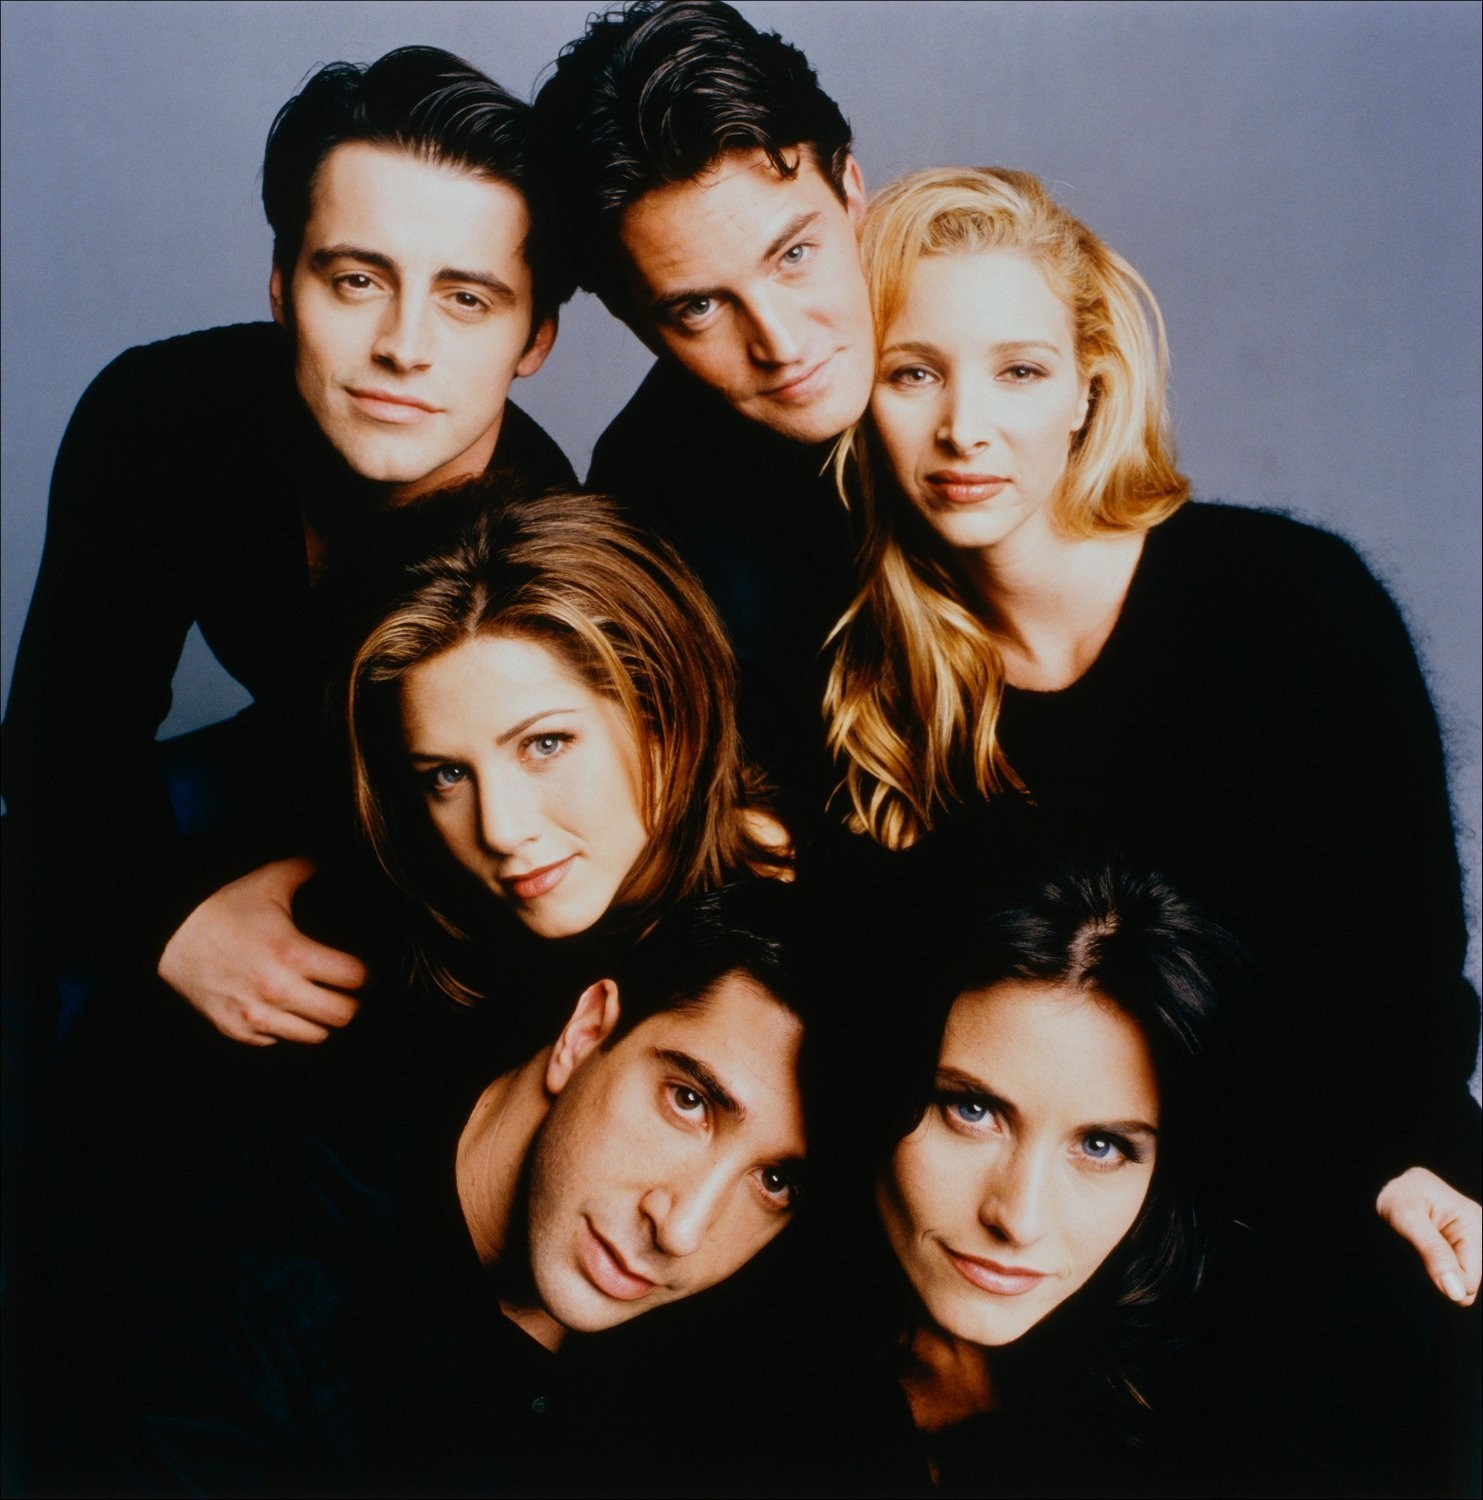 The Friends Finale: Does it hold up? Don't go there! - by Dan B.